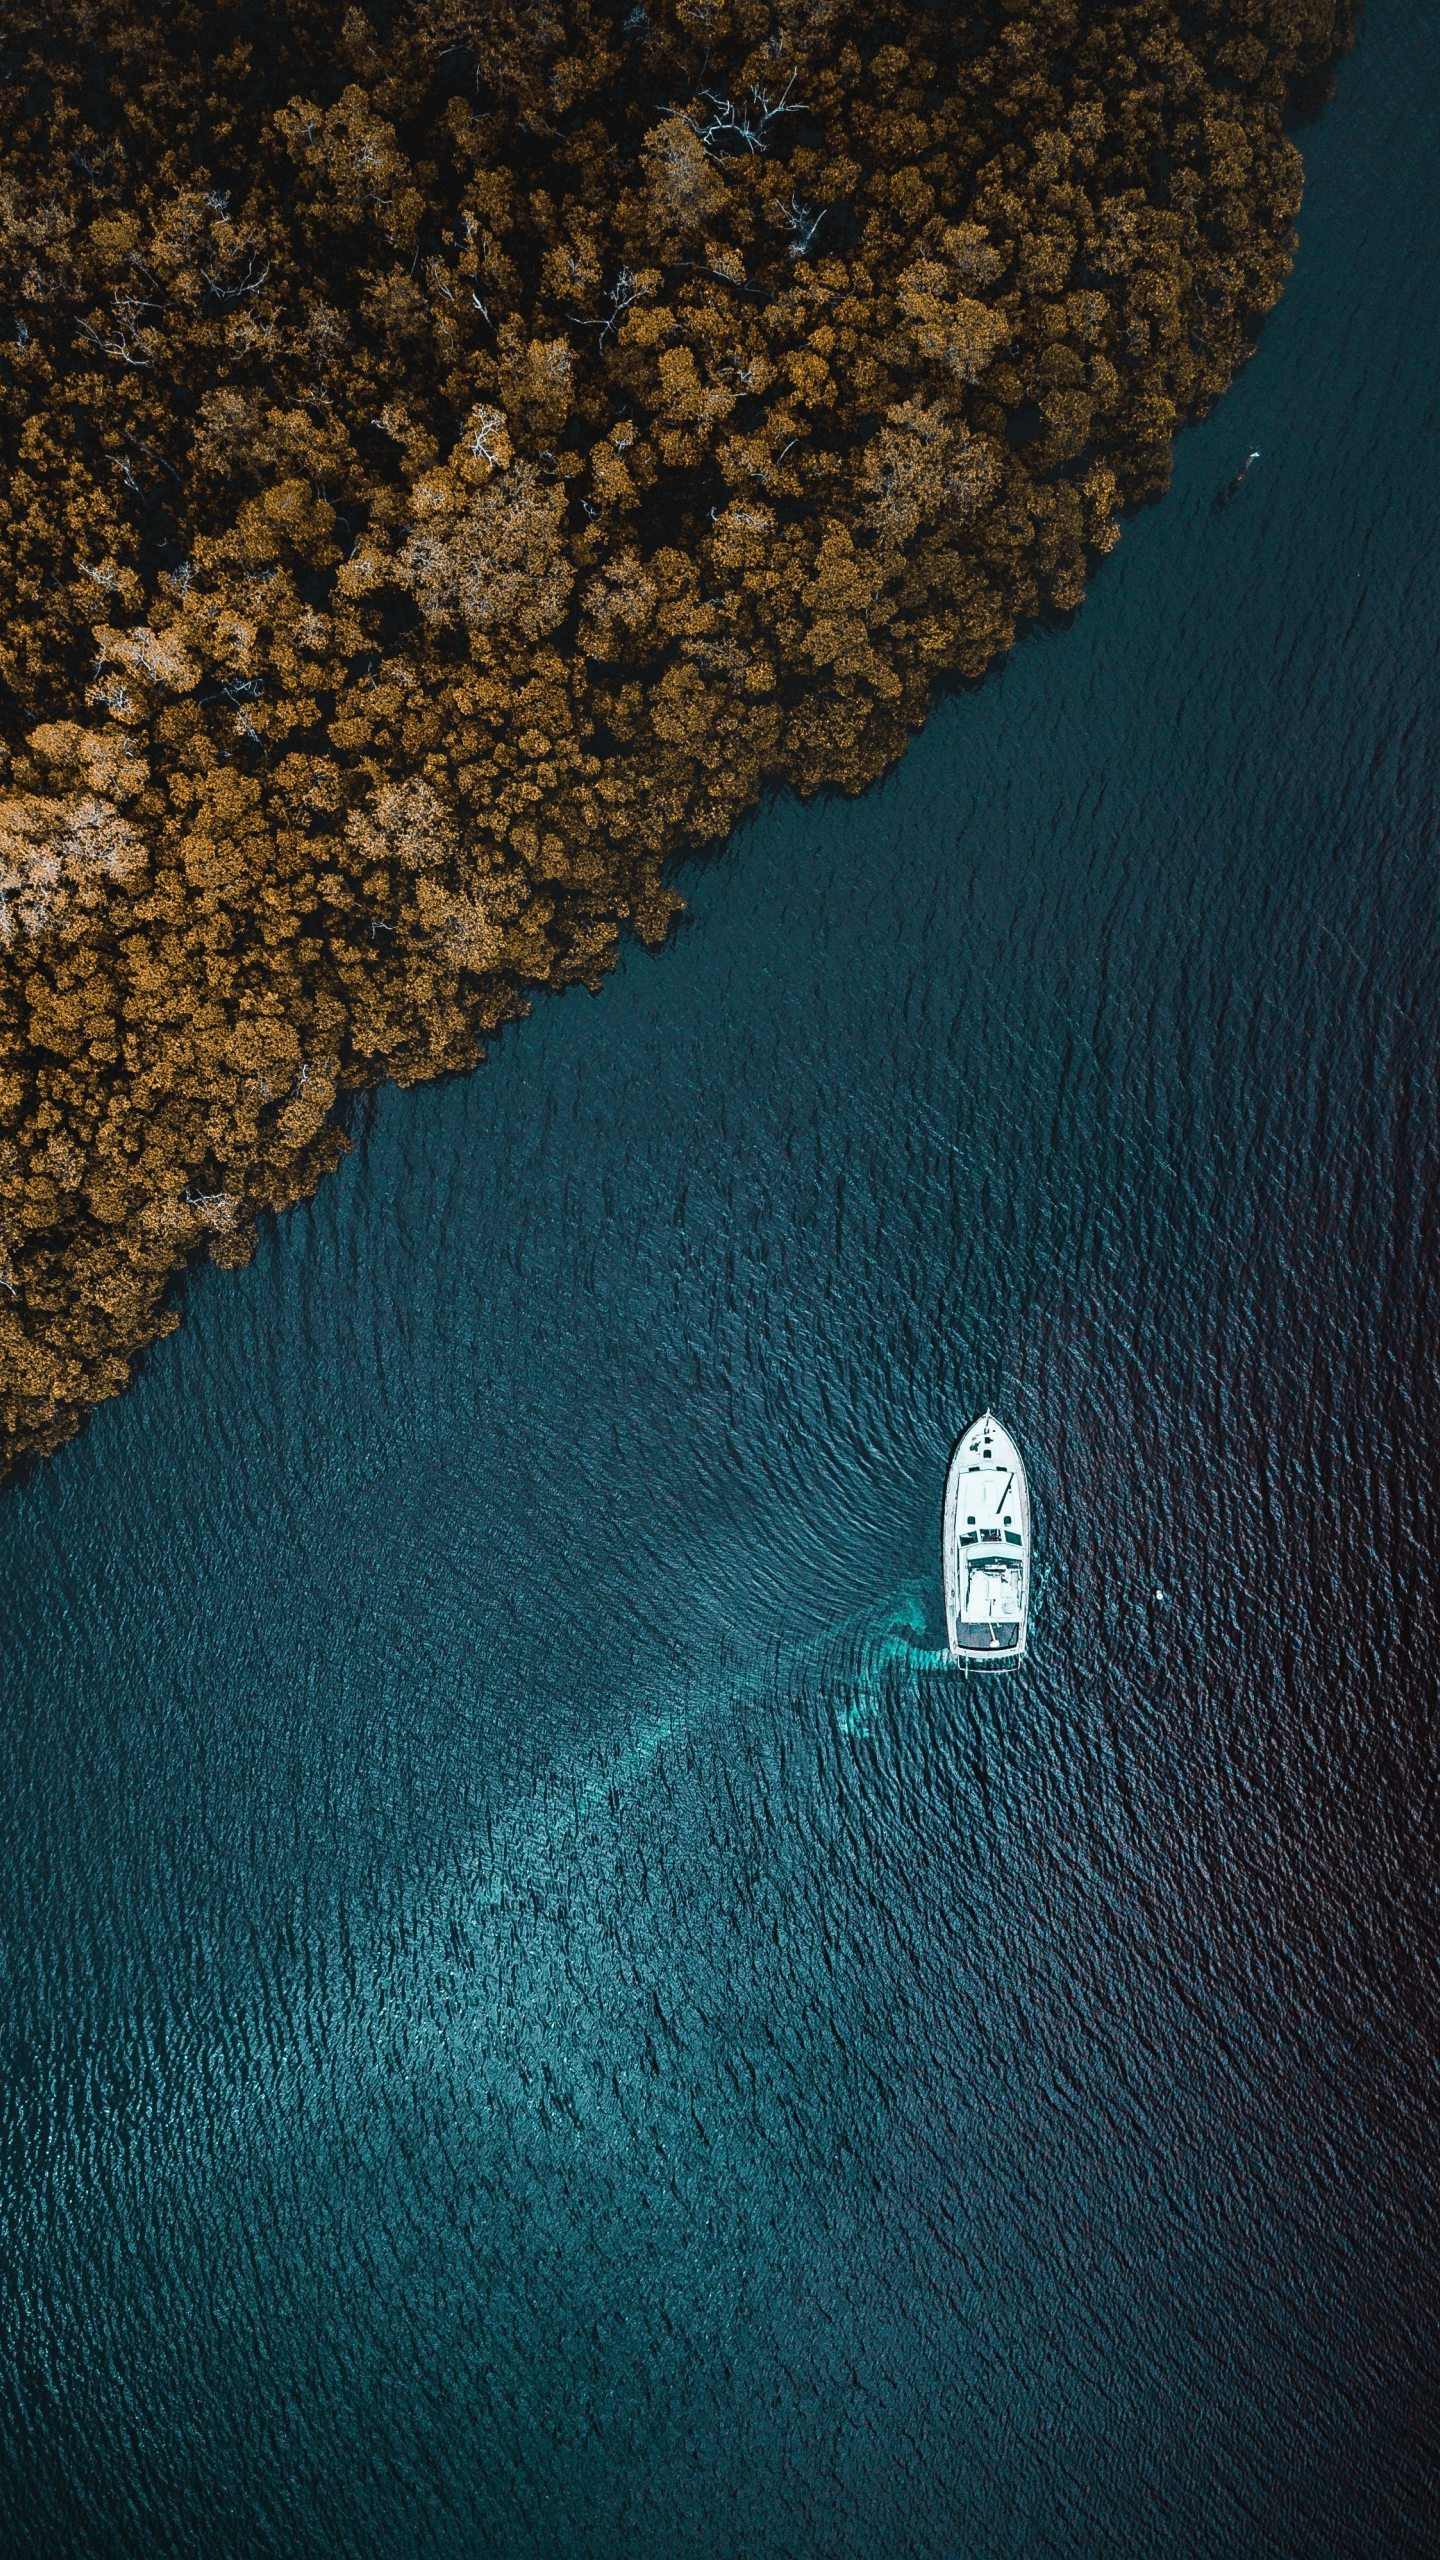 Aerial view, sea, forest, boat, 1440x2560 wallpaper